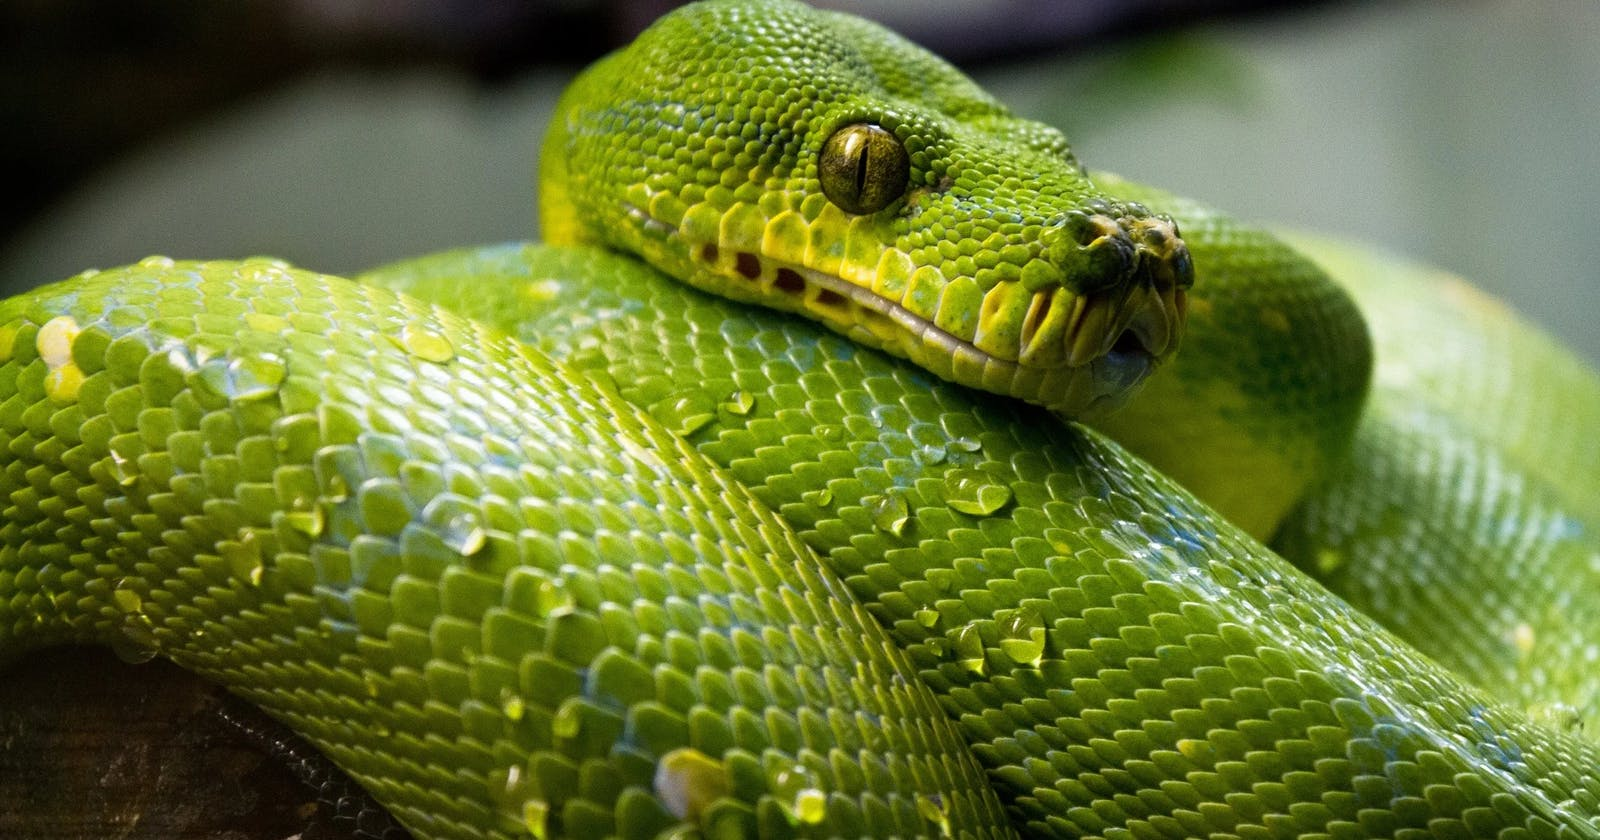 So you want to be a Python expert?